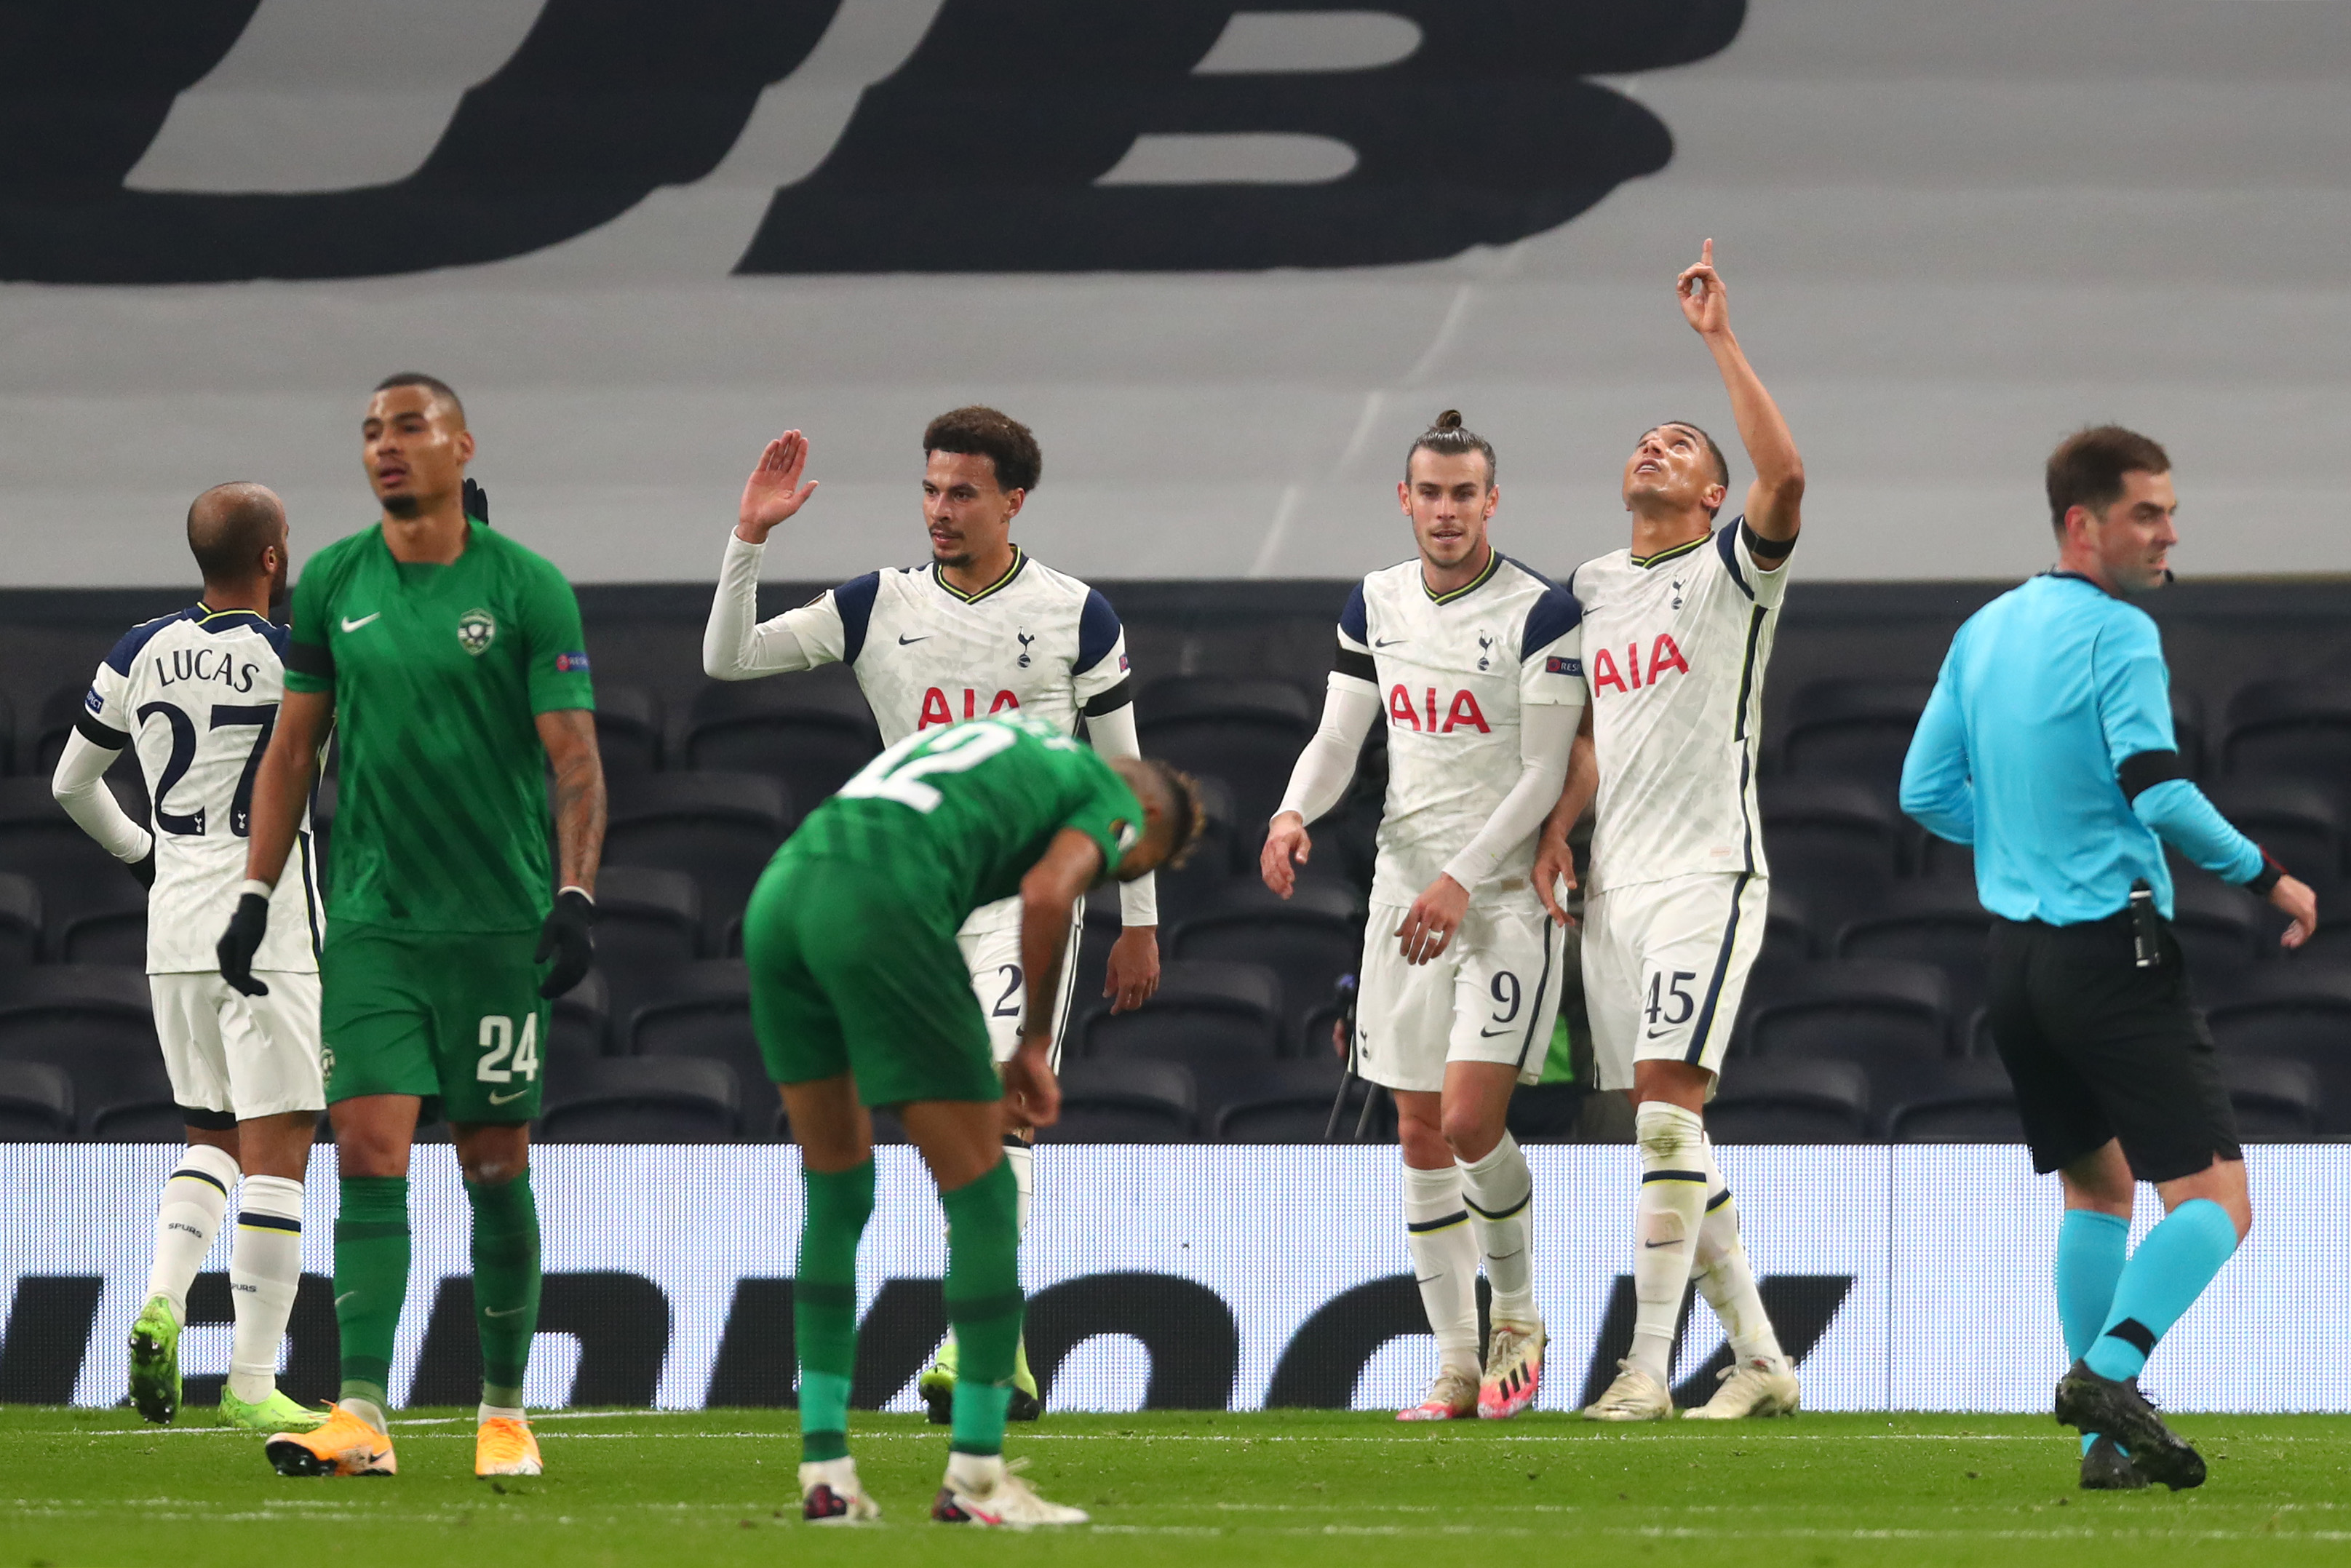 Tottenham Hotspur players celebrating goal against Ludogorets